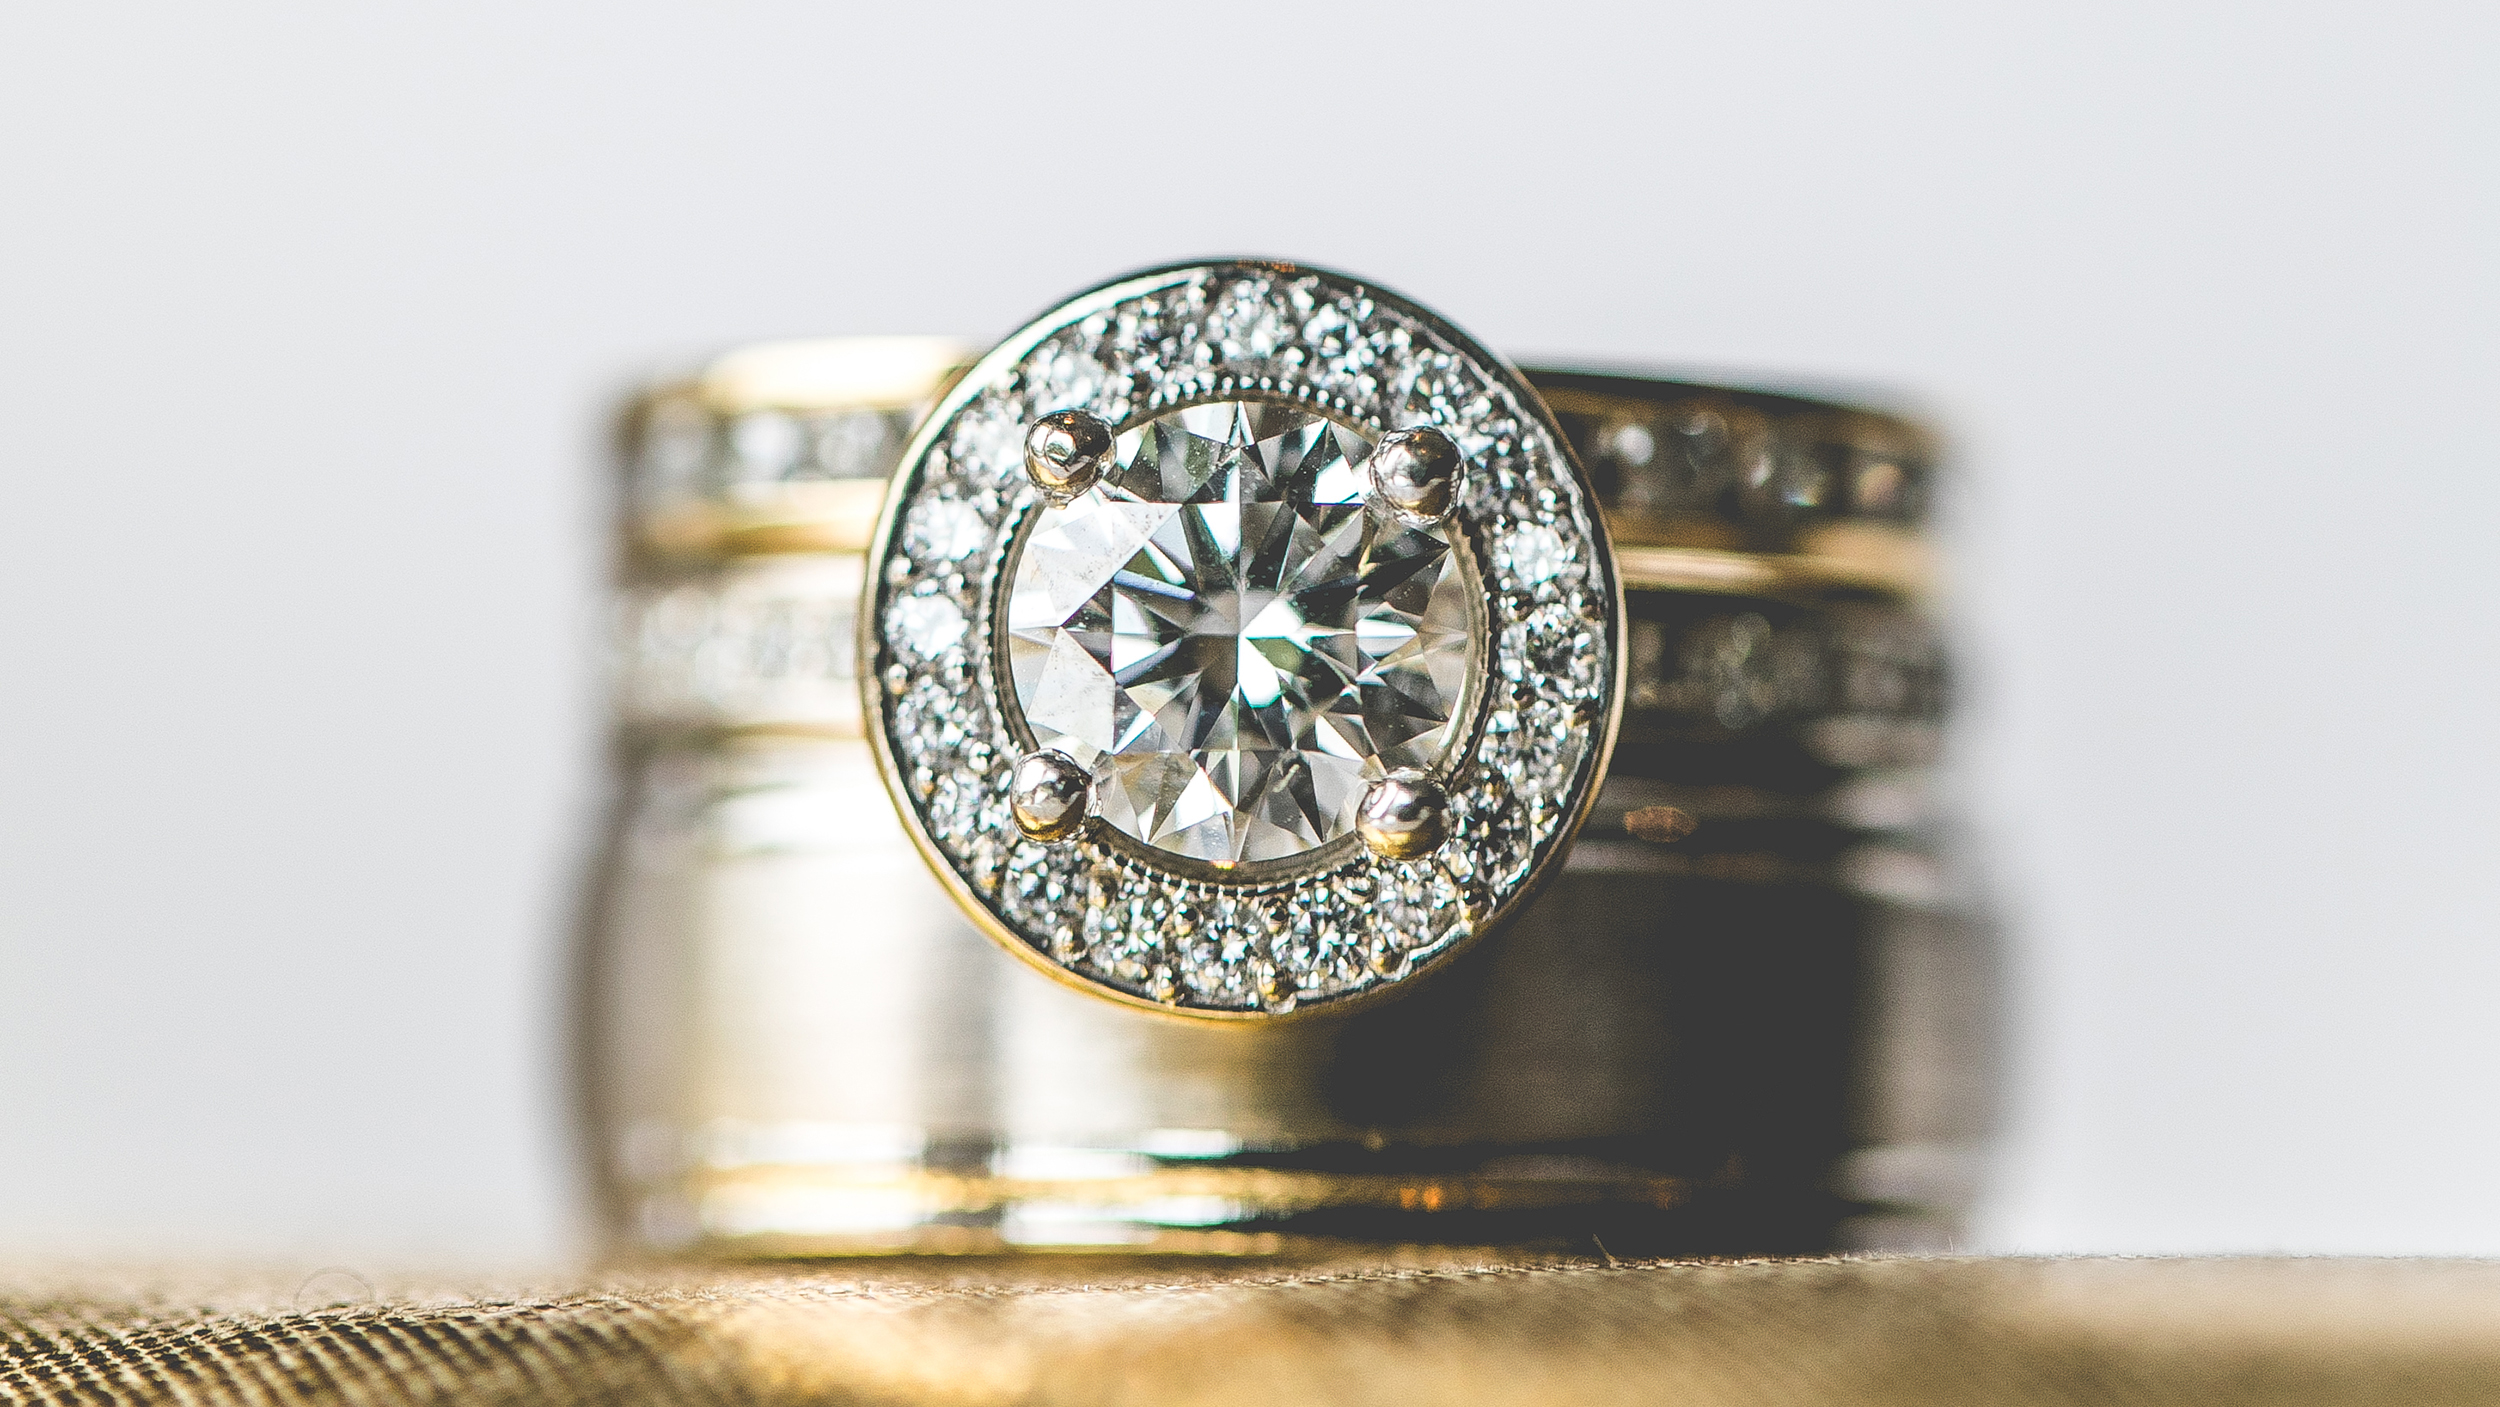 diamond rings council tips a band and david s meaningful style wedding guide gold trends to bridal rose blog